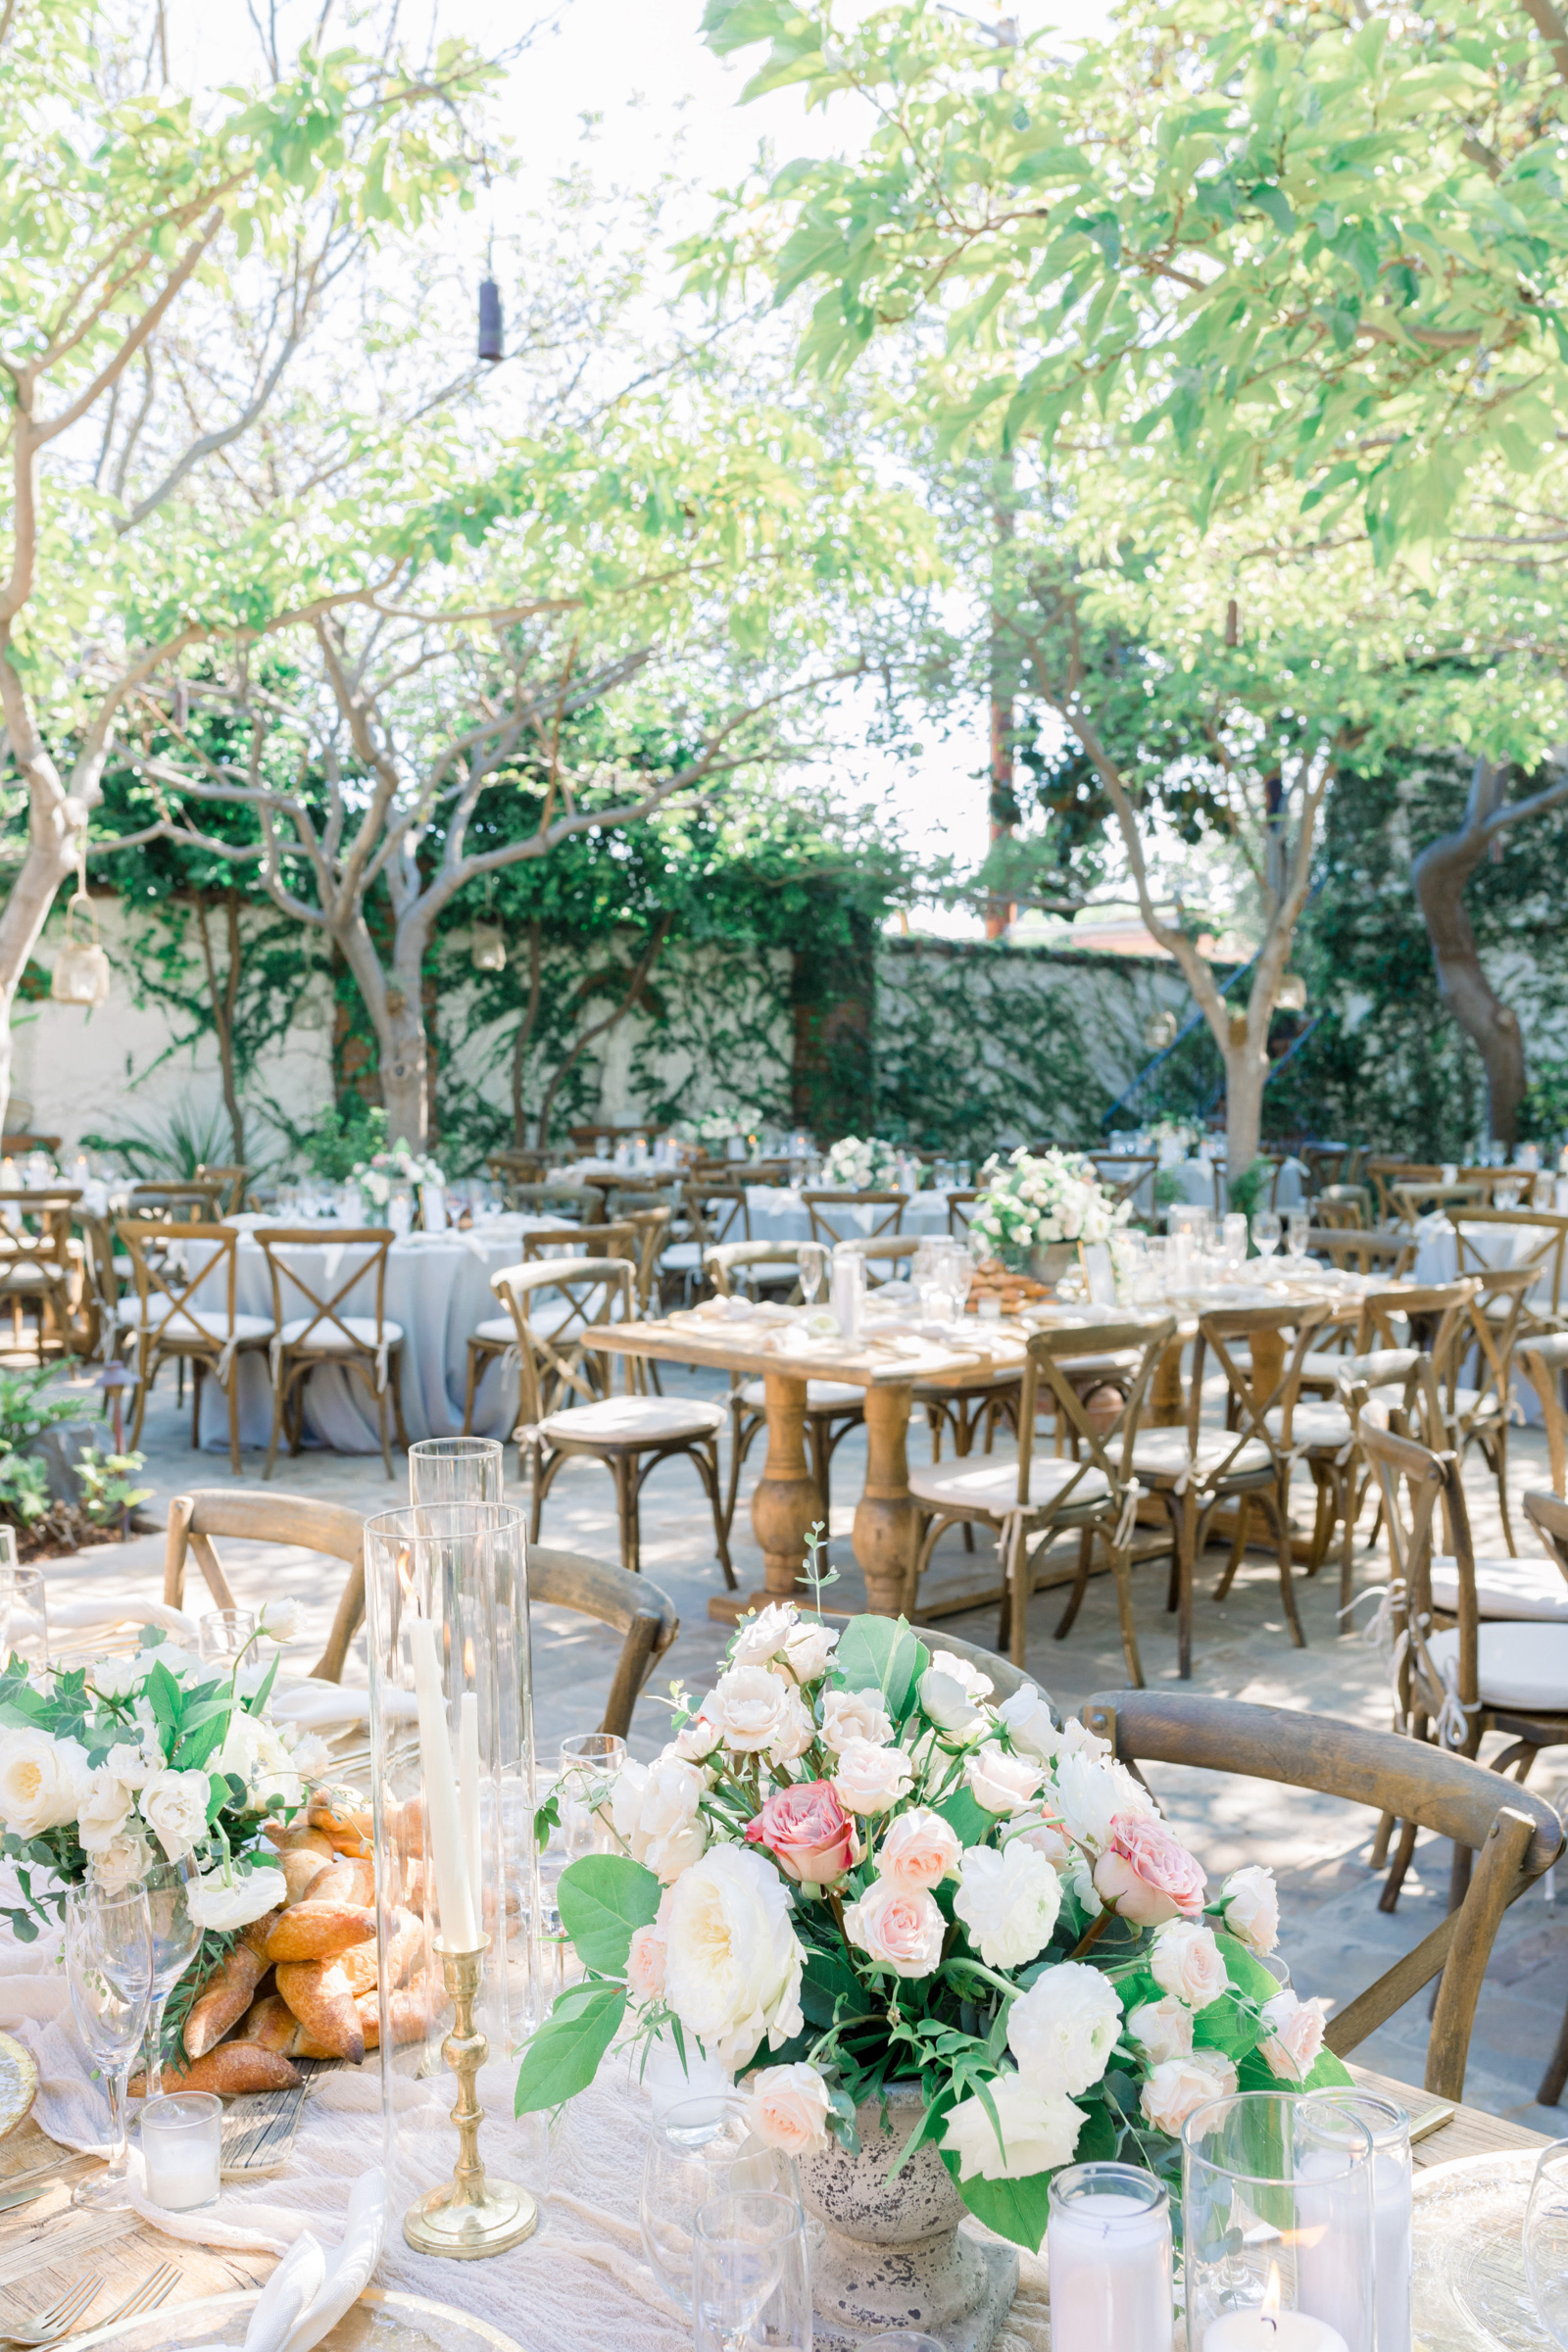 Malibu-Rocky-Oaks-Photographer-Malibu-Wedding-Style-Me-Pretty-Southern-California-Wedding-Venues-Natalie-Schutt-Photography_02.jpg